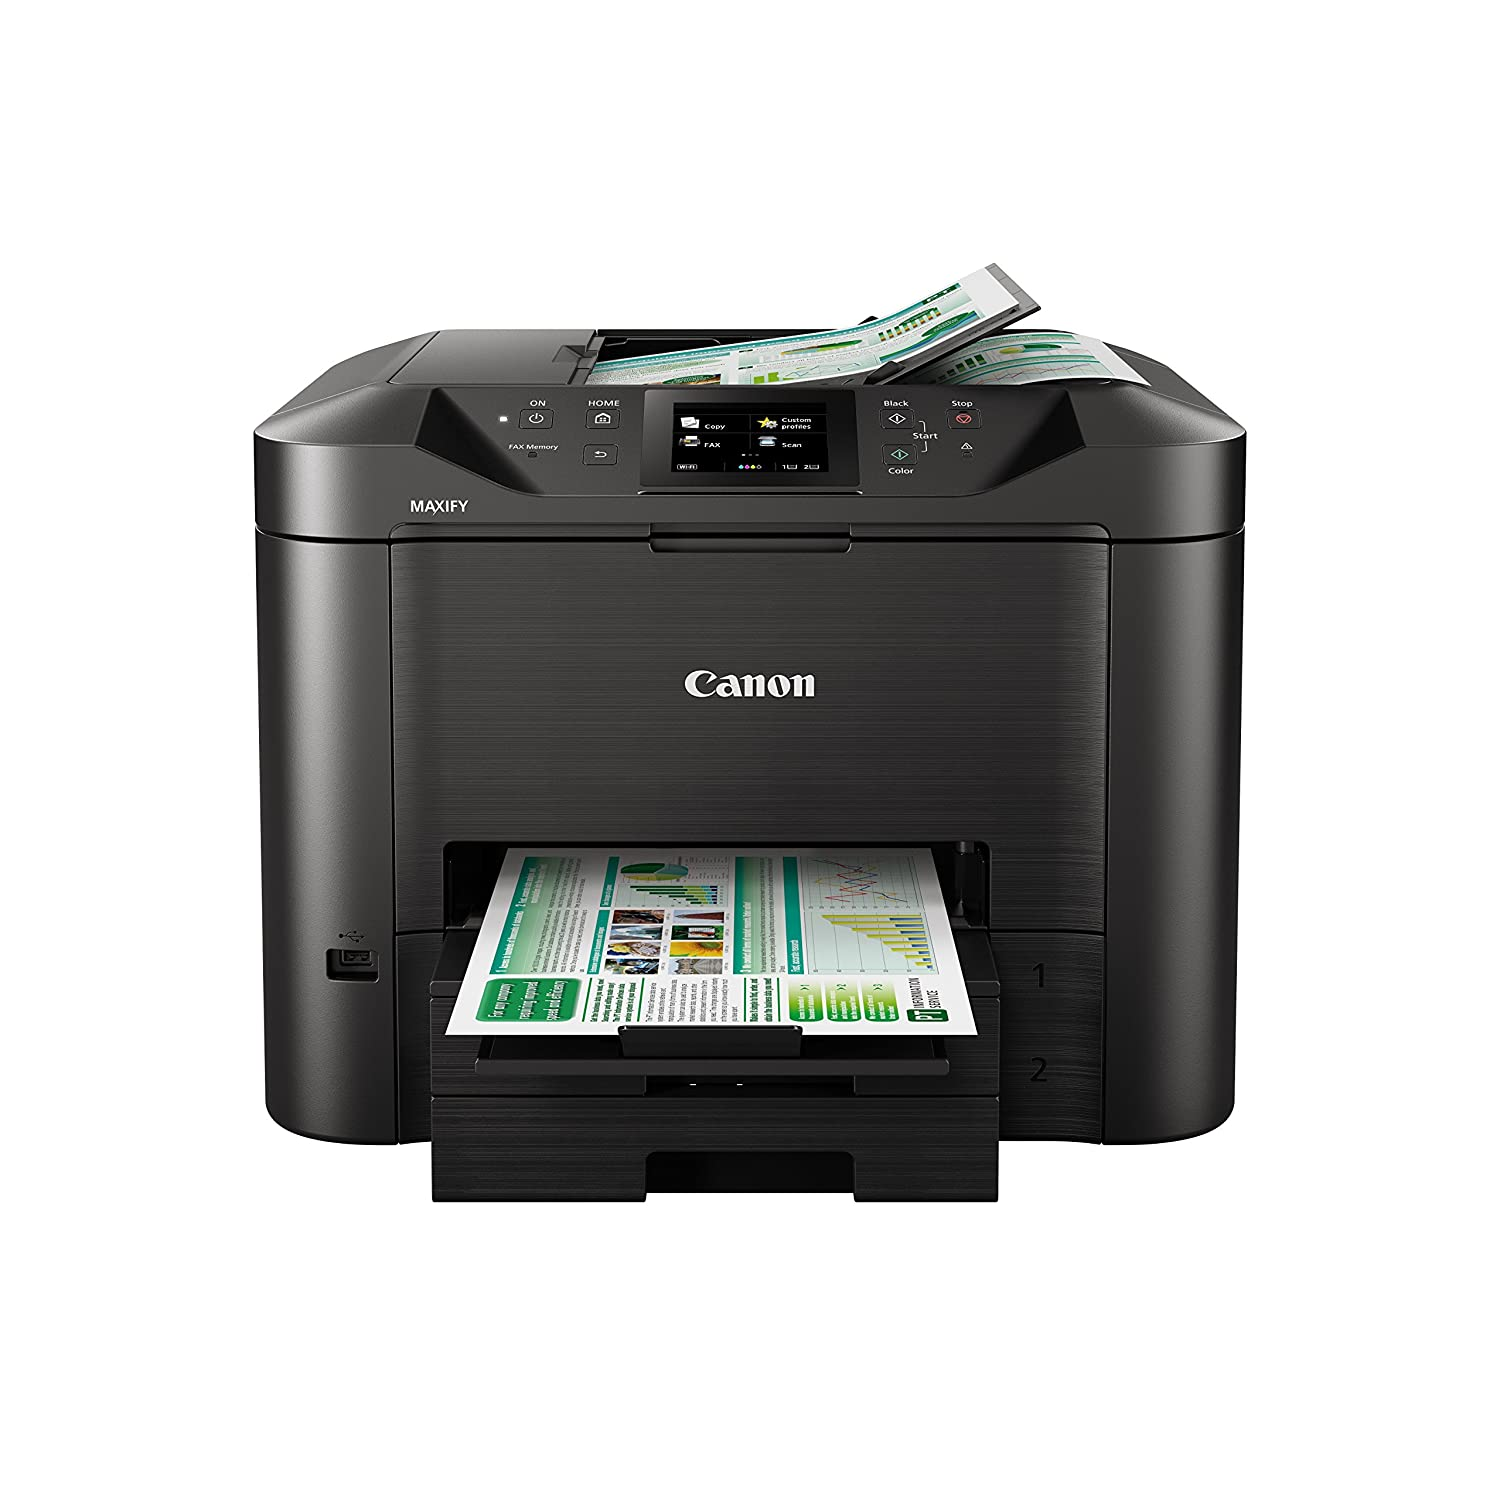 Canon MAXIFY MB5450 600 x 1200 dpi Inkjet Business Printer: Amazon